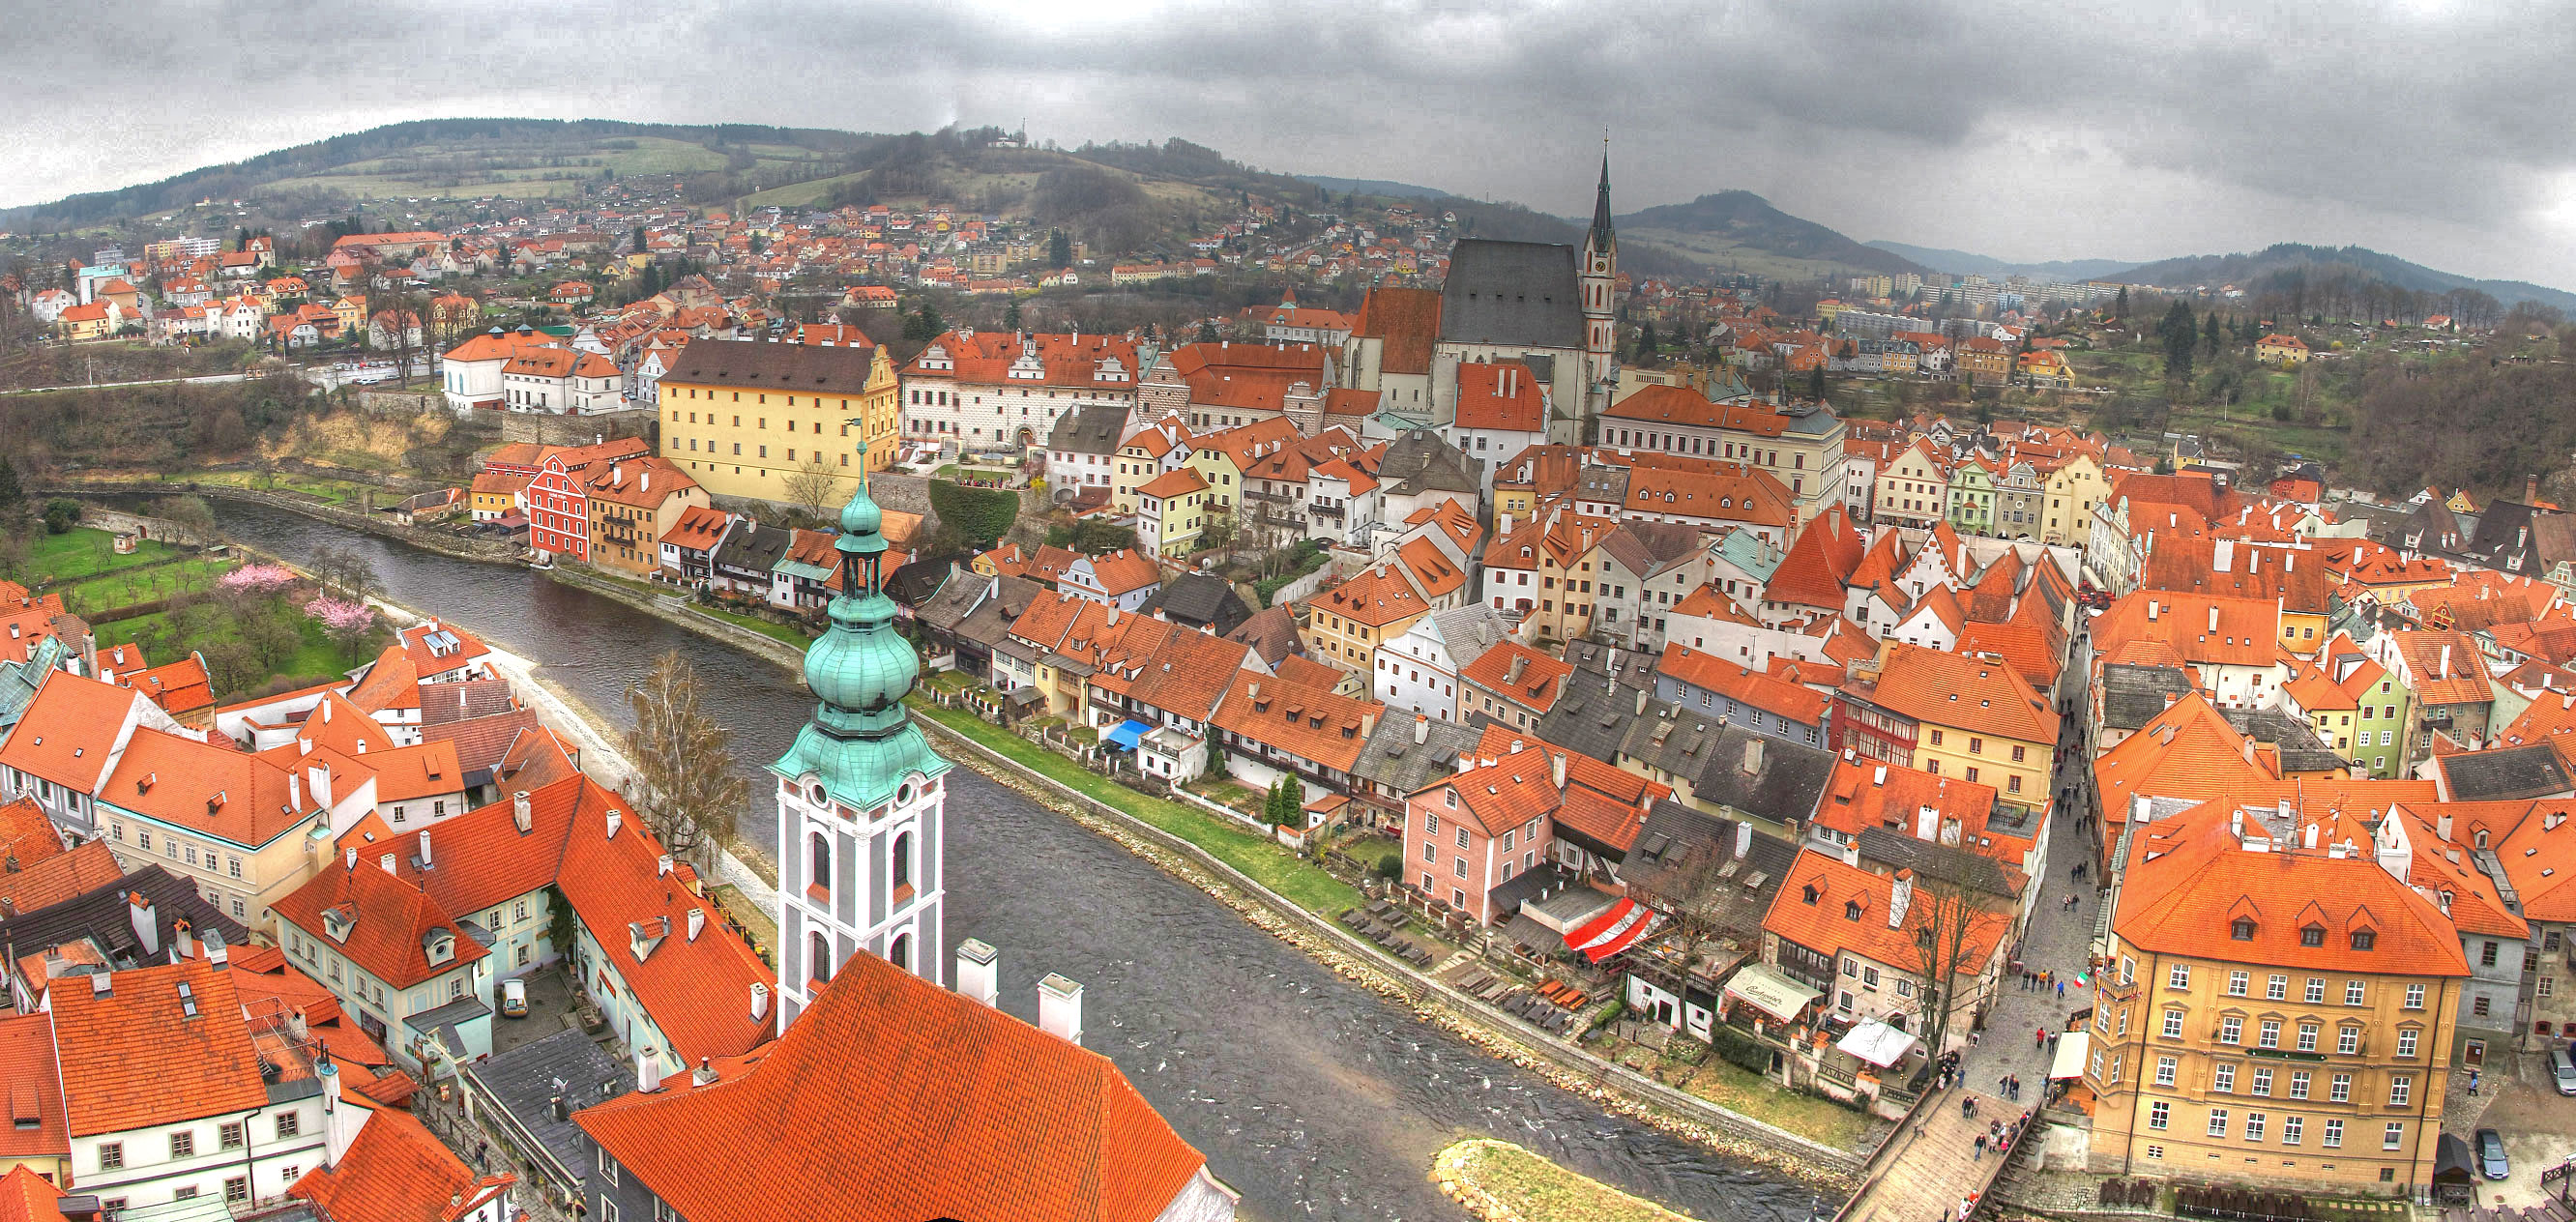 Cesky Krumlov is considered to be a major up-and-coming travel destination in Europe